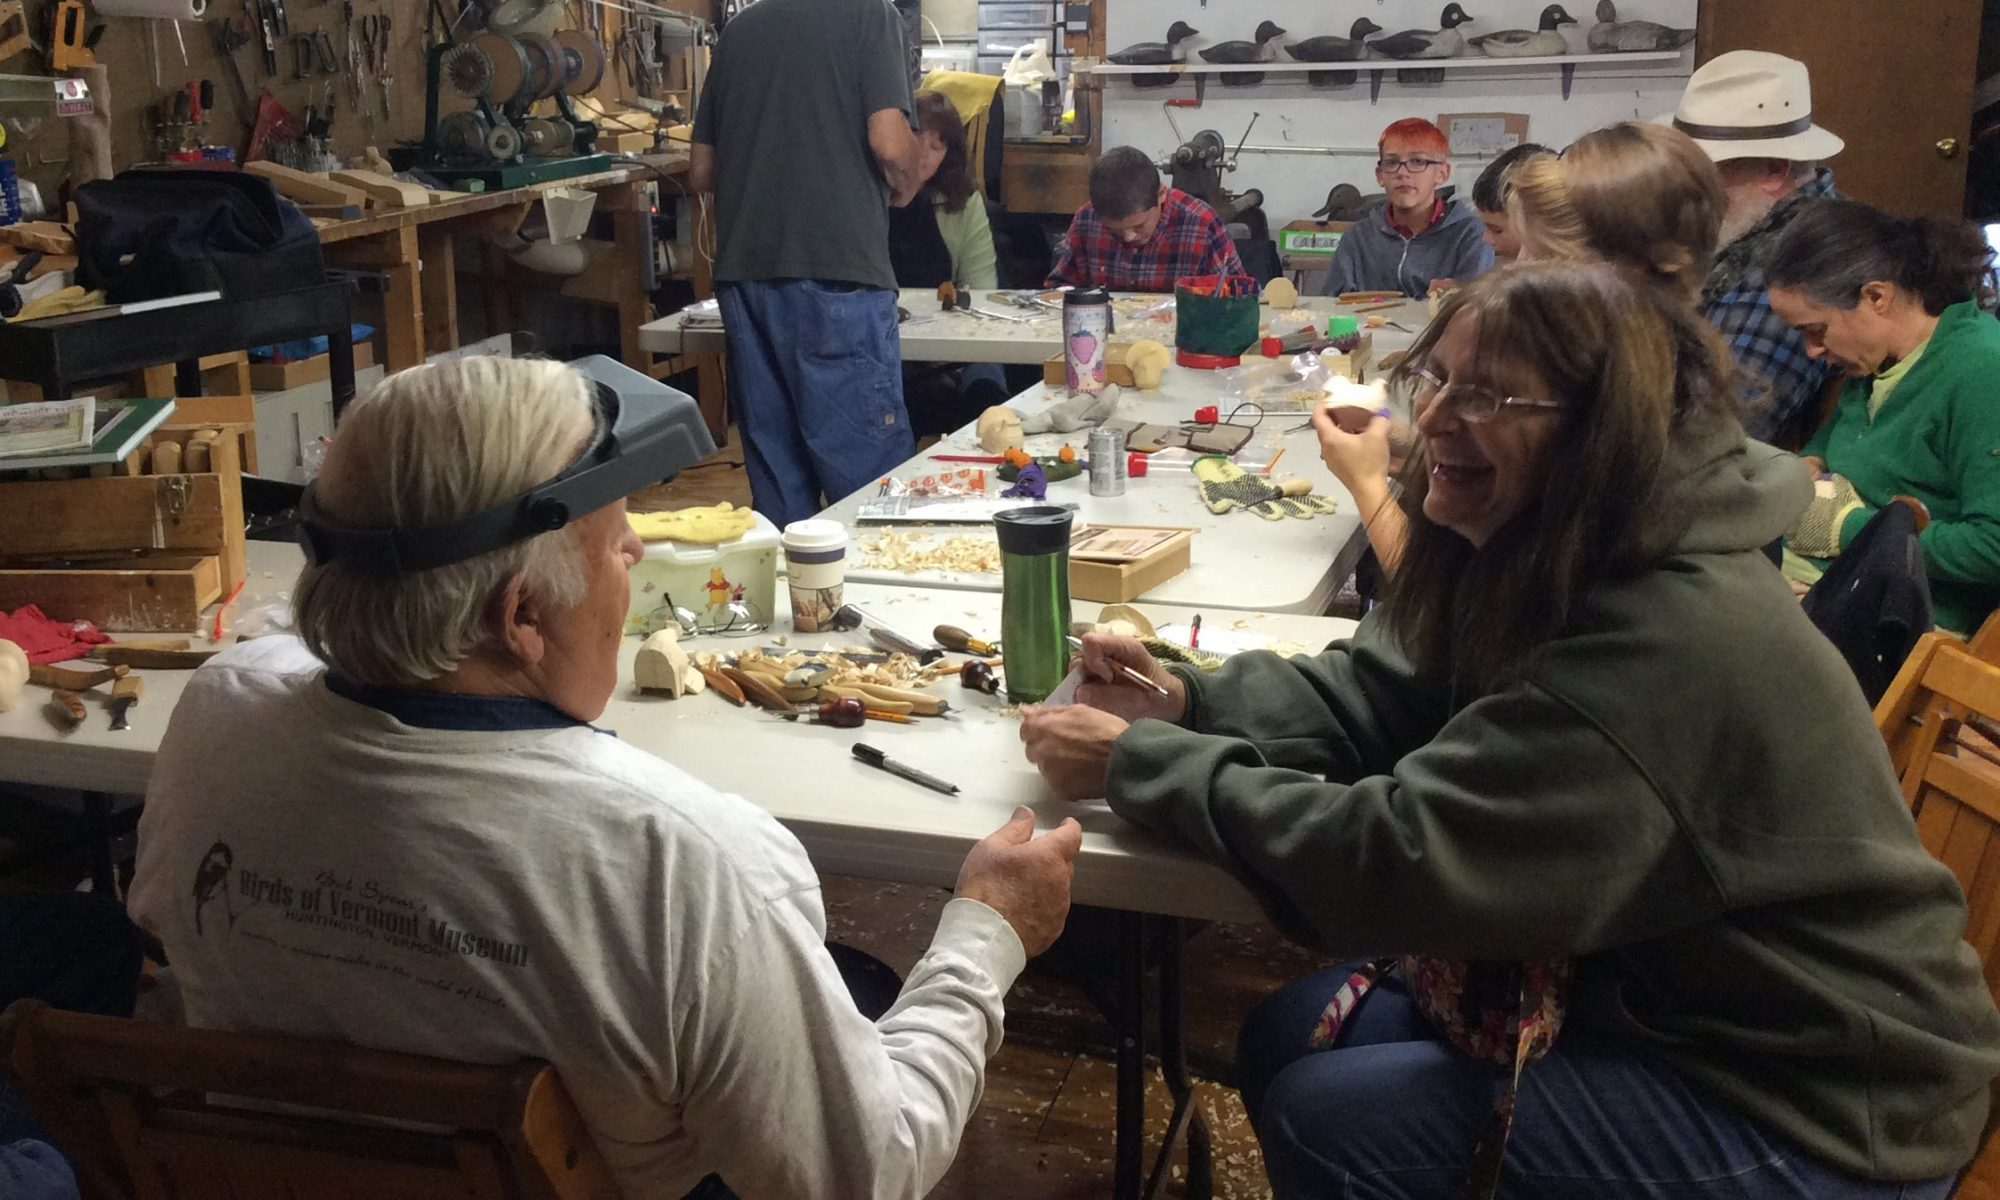 Several woodcarvers carving, painting, and chatting at tables in the workshop at the Birds of Vermont Museum.